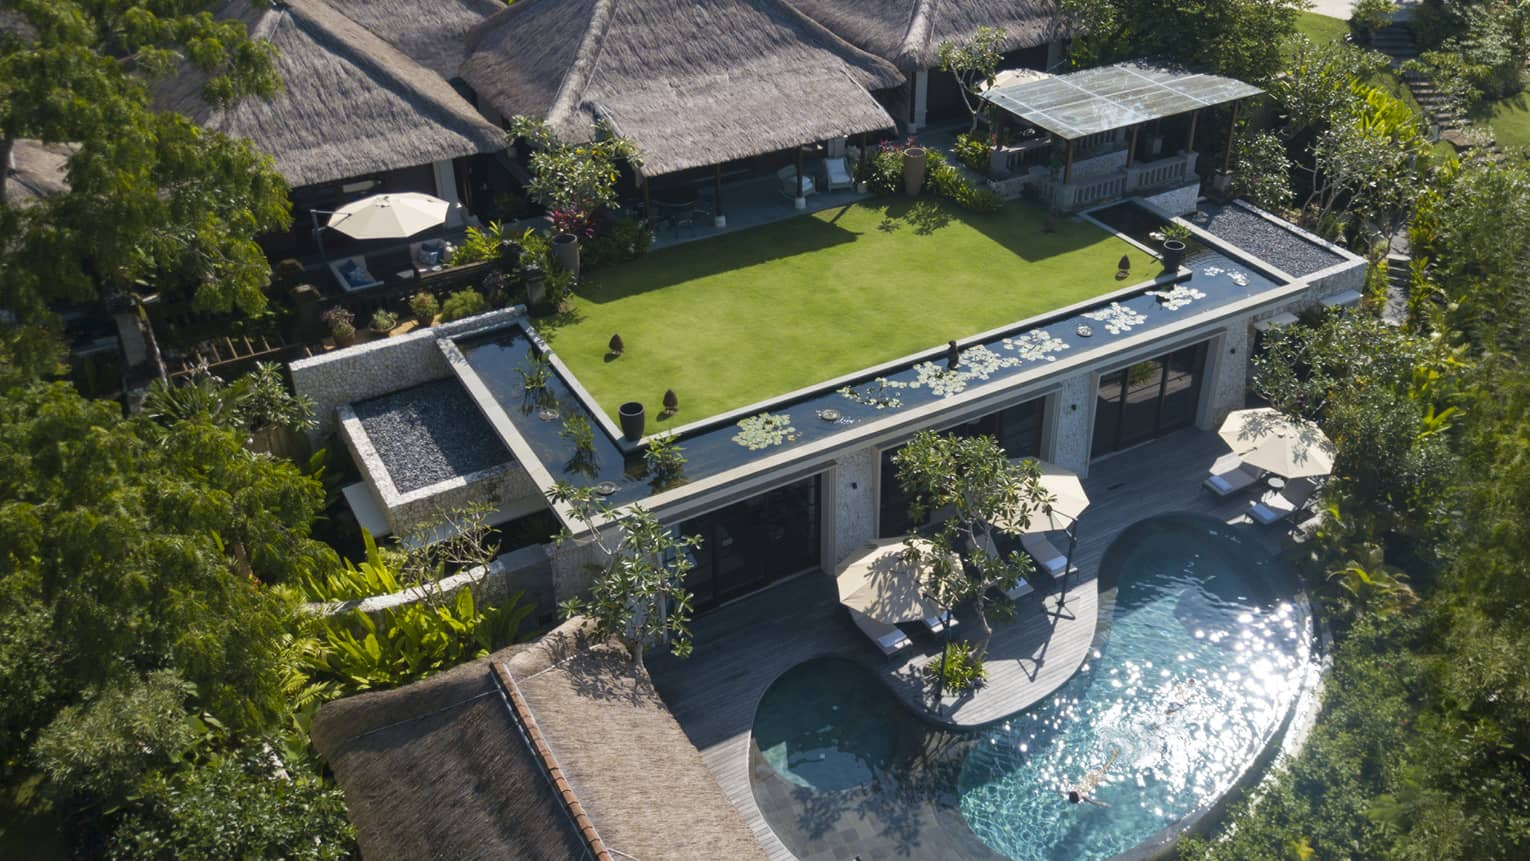 An overhead view of an Imperial Villa, with a guest enjoying the sunlight at the private pool